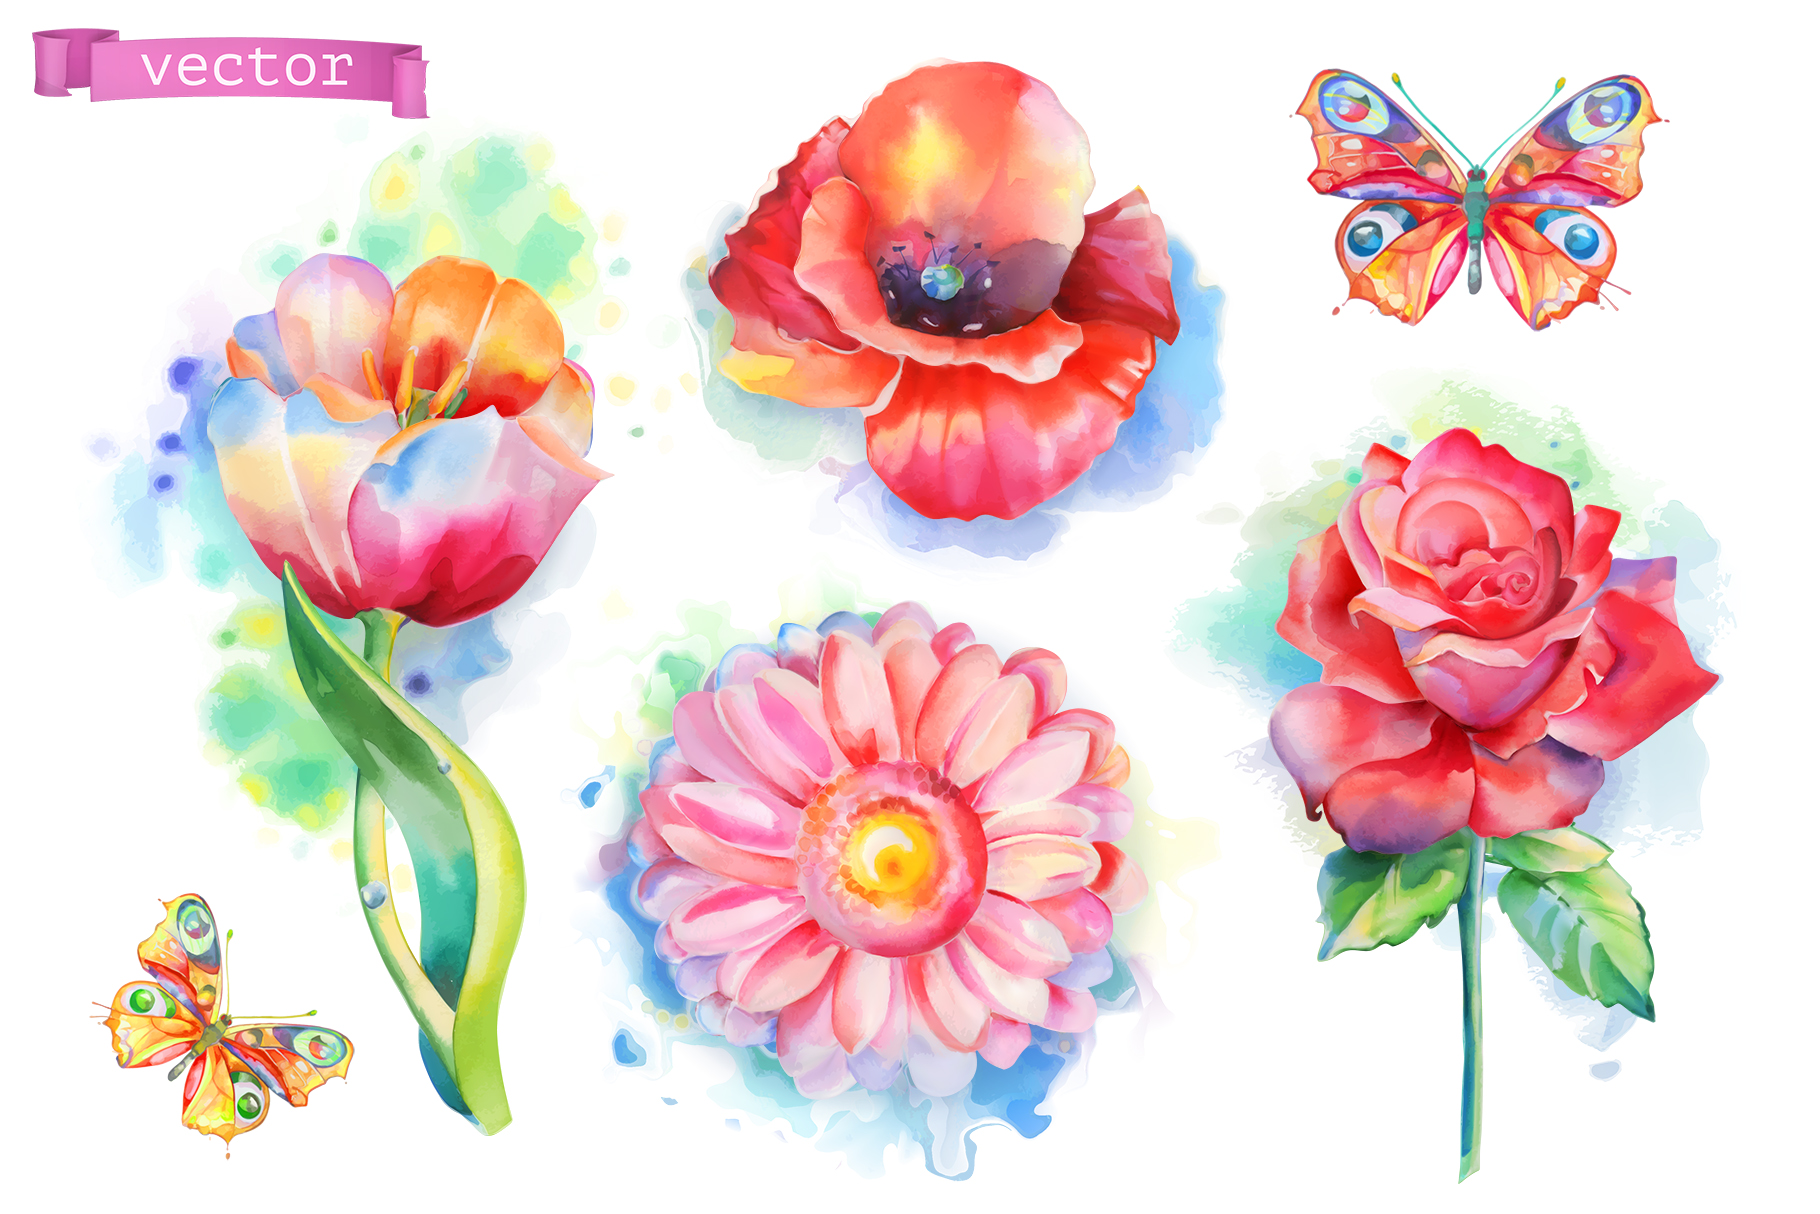 Flowers set. Rose and other plants. Watercolor, vector icons example image 1